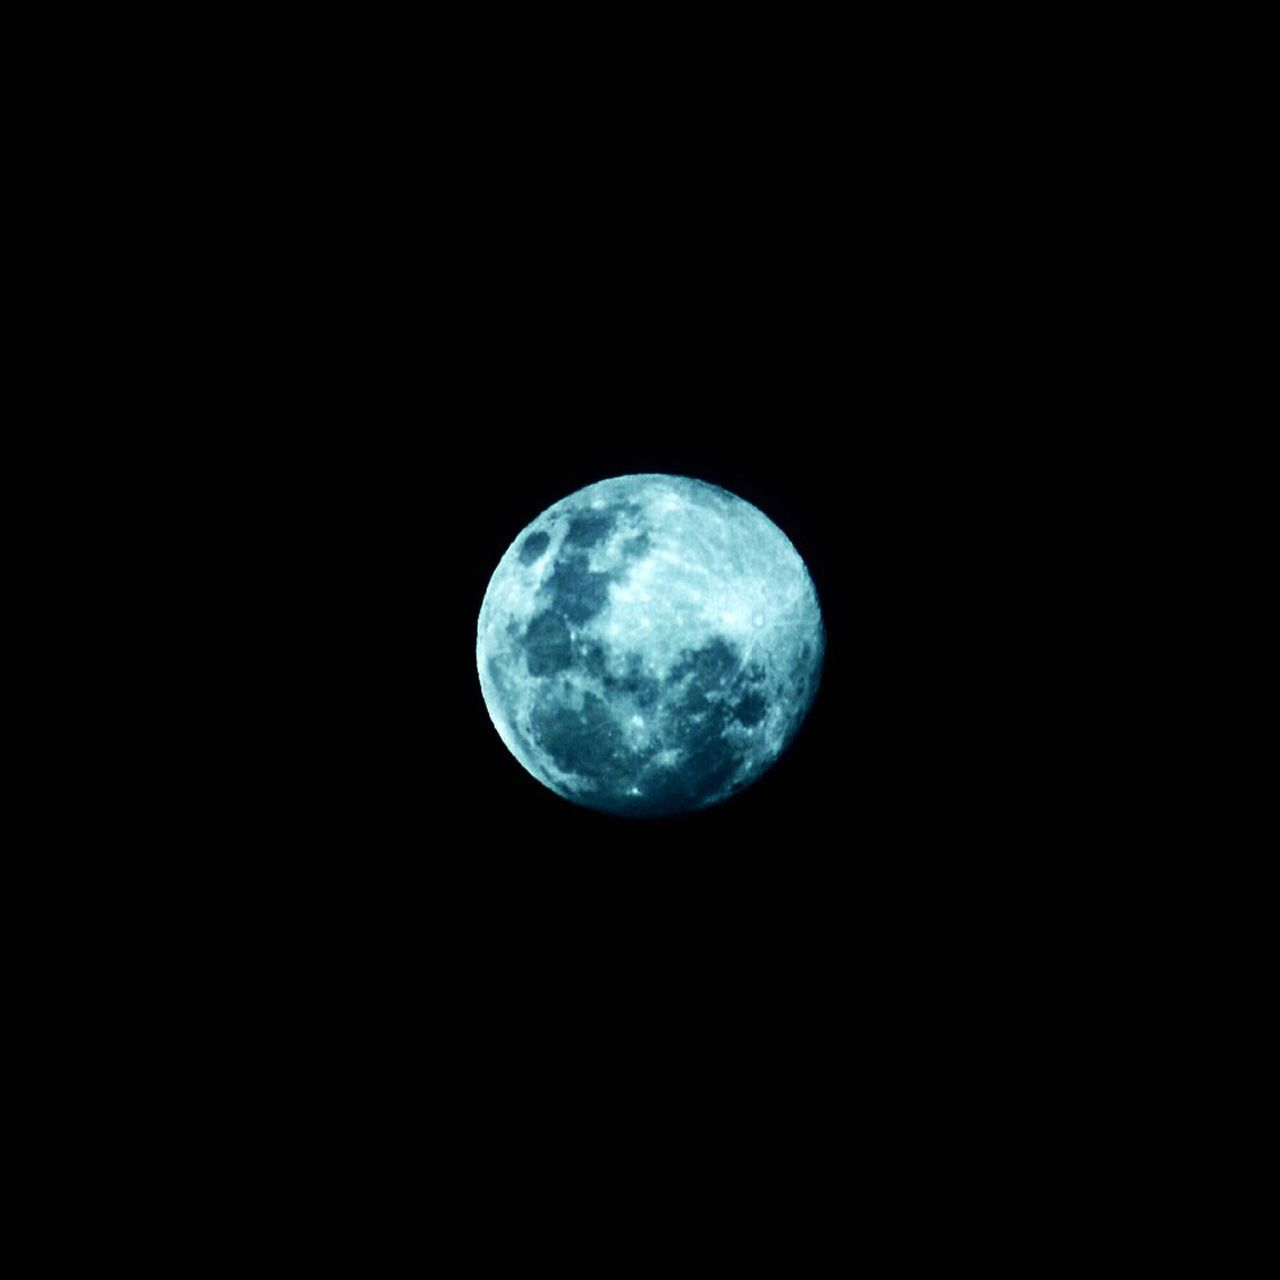 moon, night, moon surface, astronomy, nature, no people, space, outdoors, beauty in nature, scenics, sky, space exploration